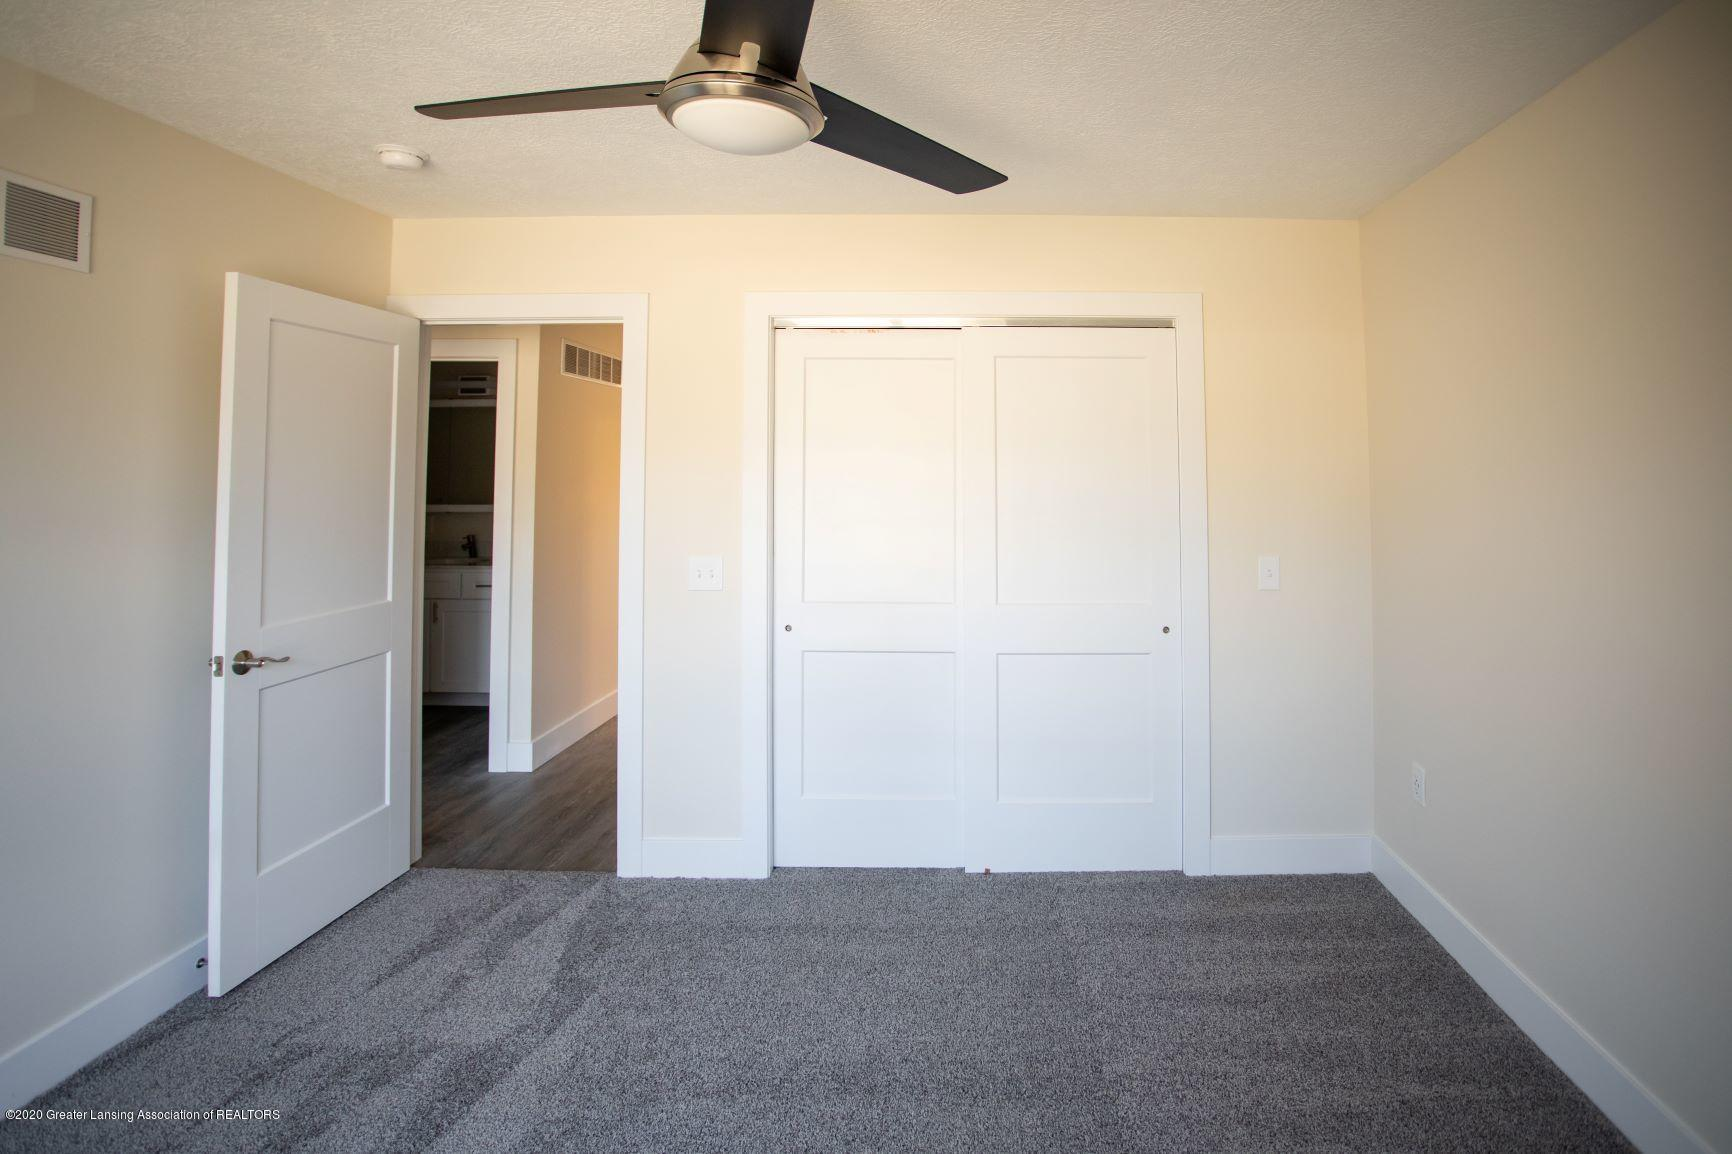 414 Haven St 2 - GB3A8009200313040918022 - 18